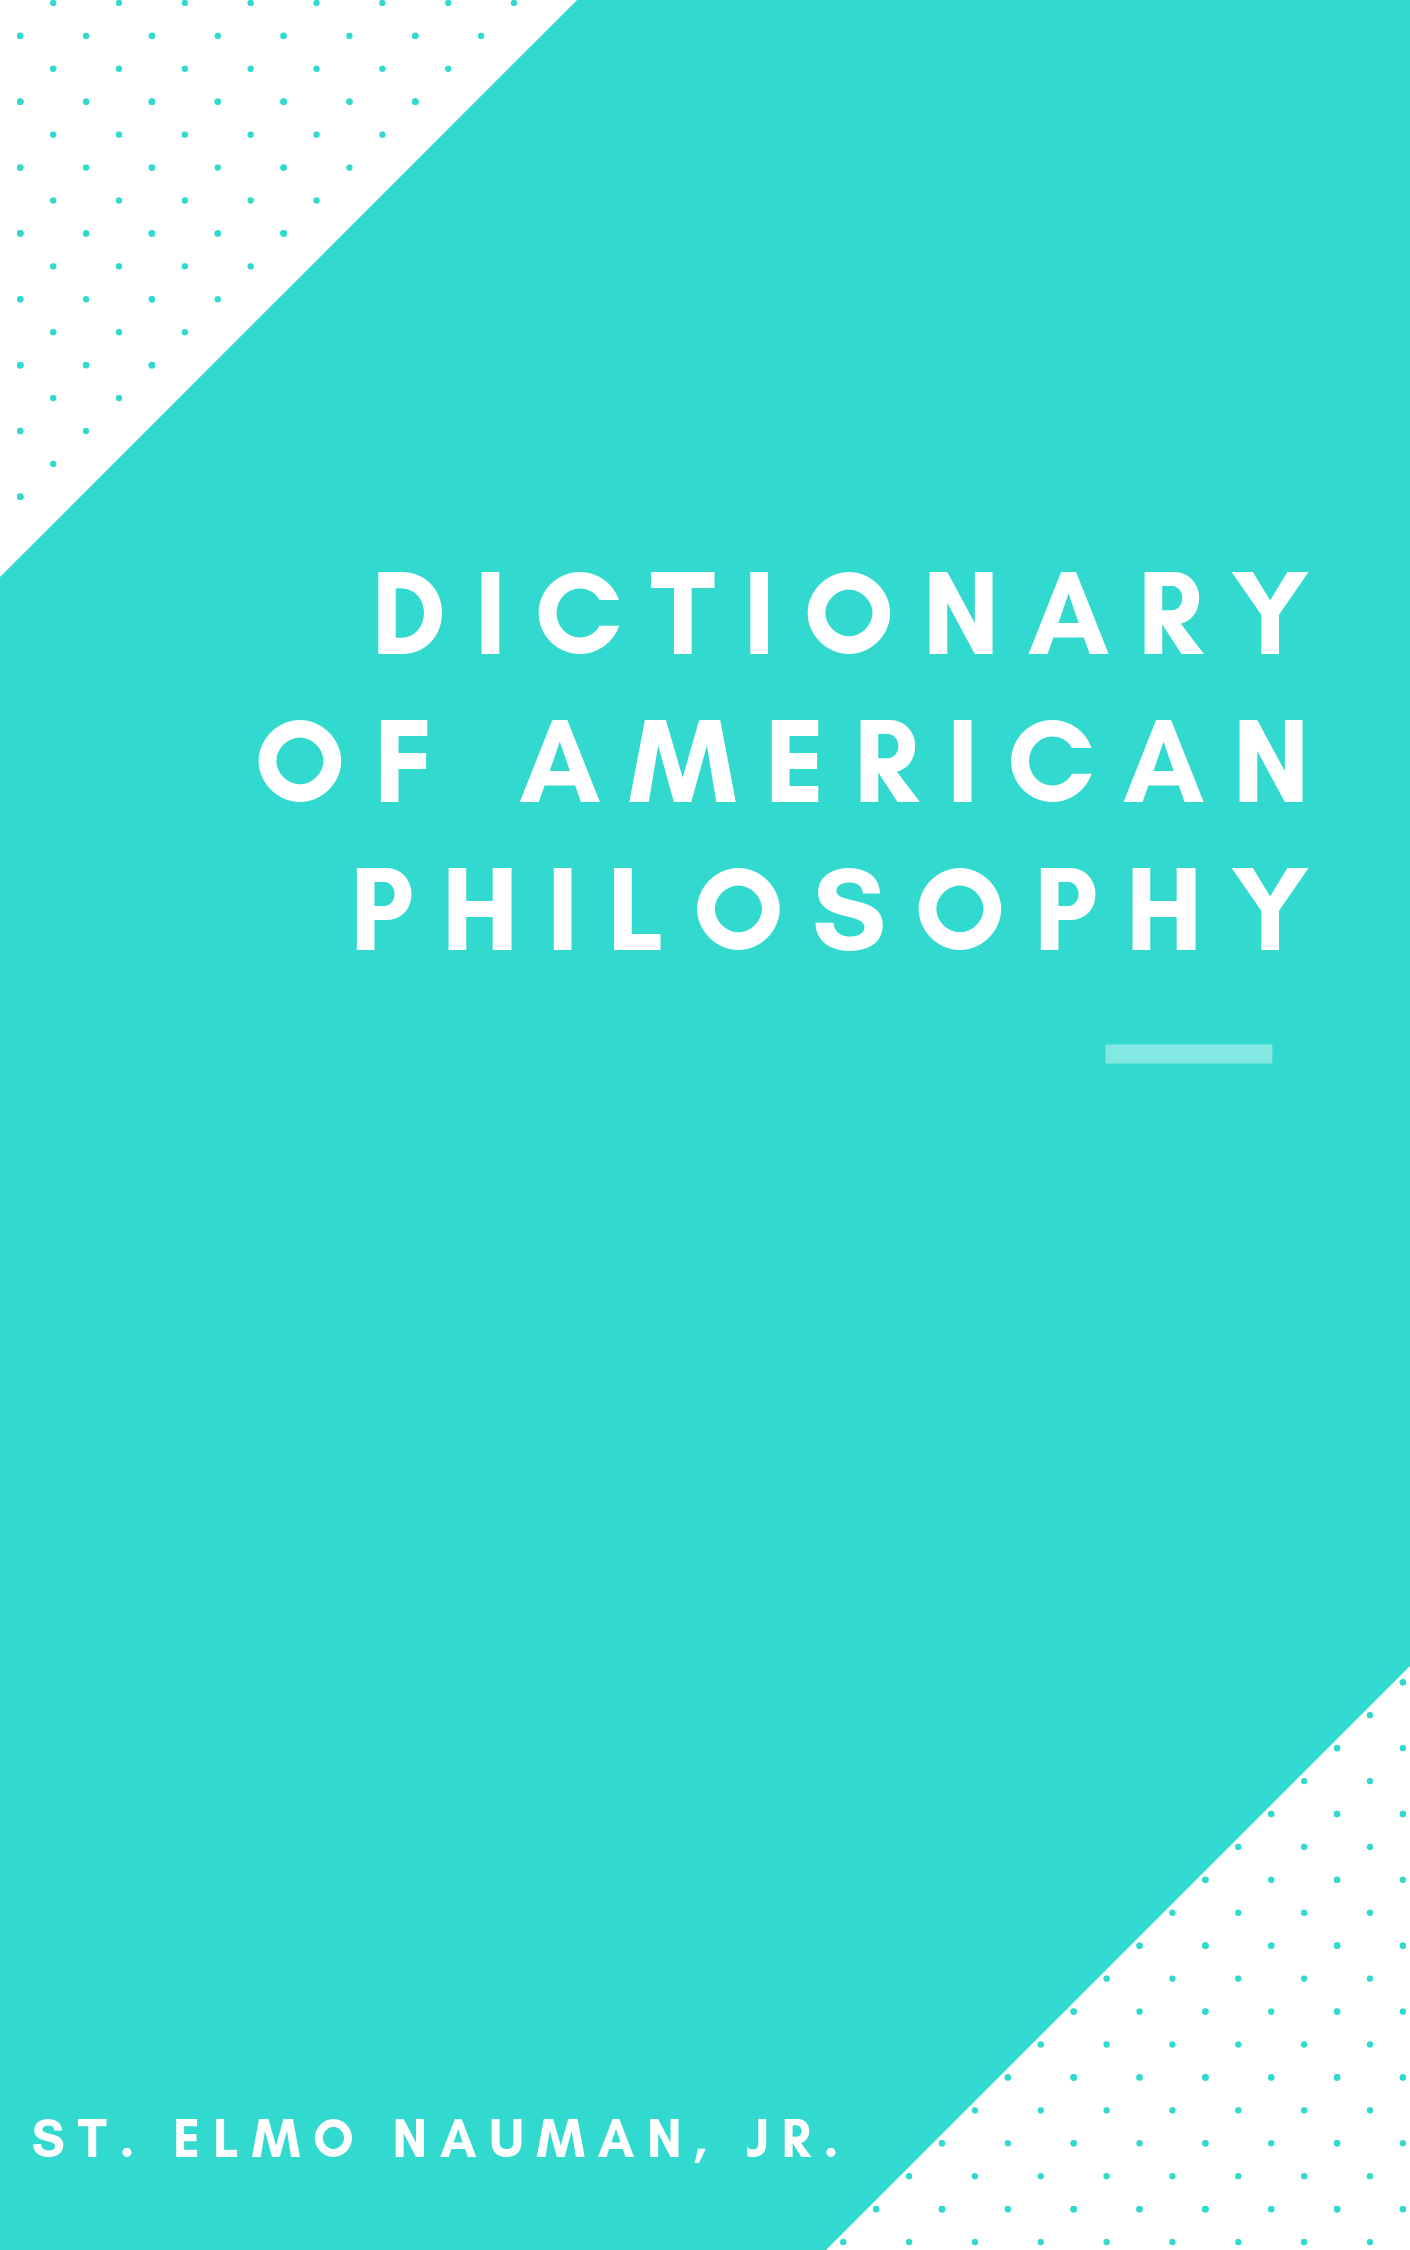 Dictionary of American Philosophy